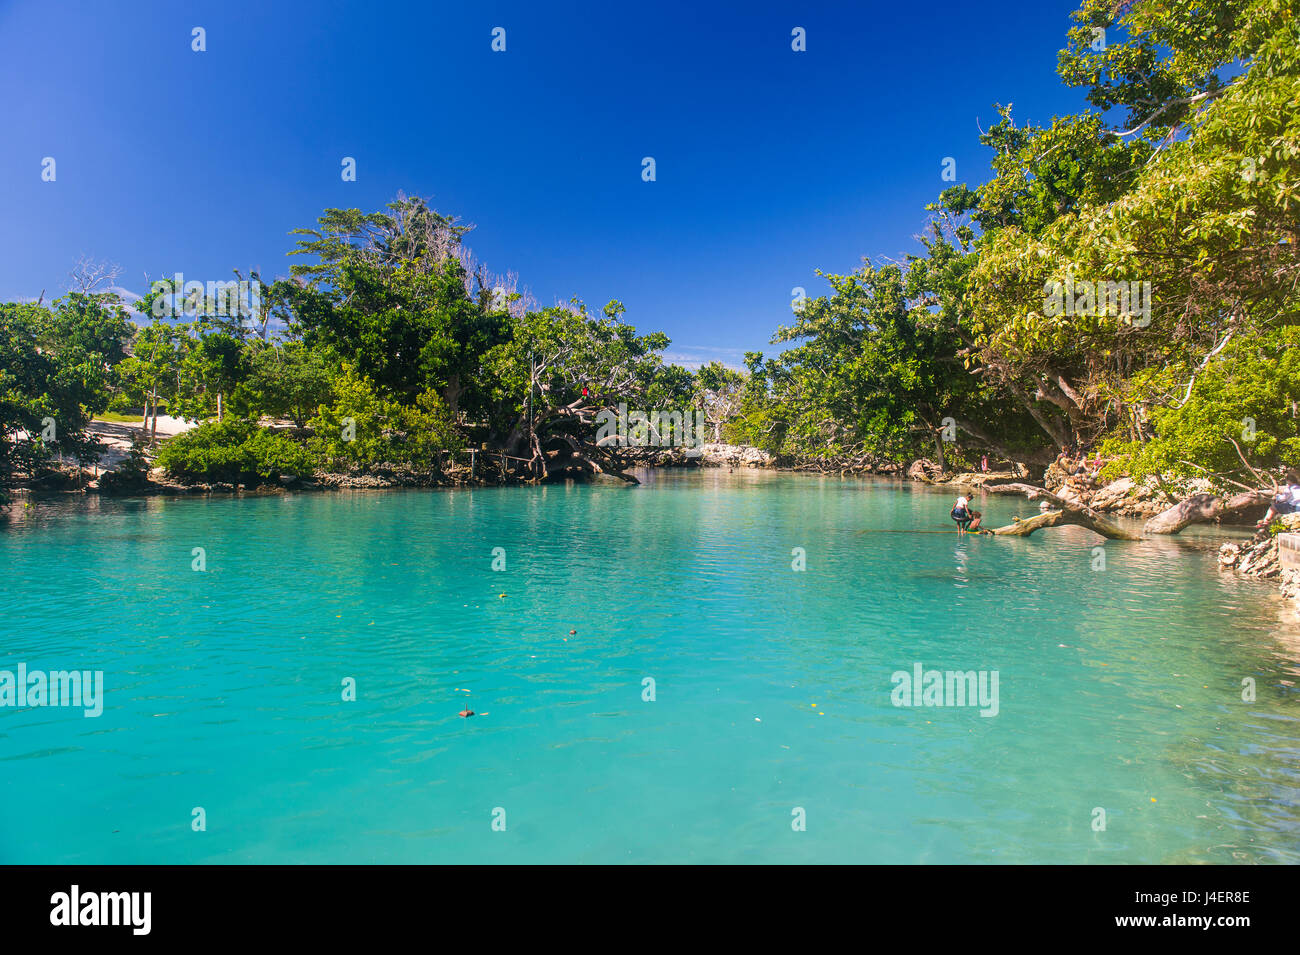 Turquoise waters in the blue lagoon, Efate, Vanuatu, Pacific - Stock Image